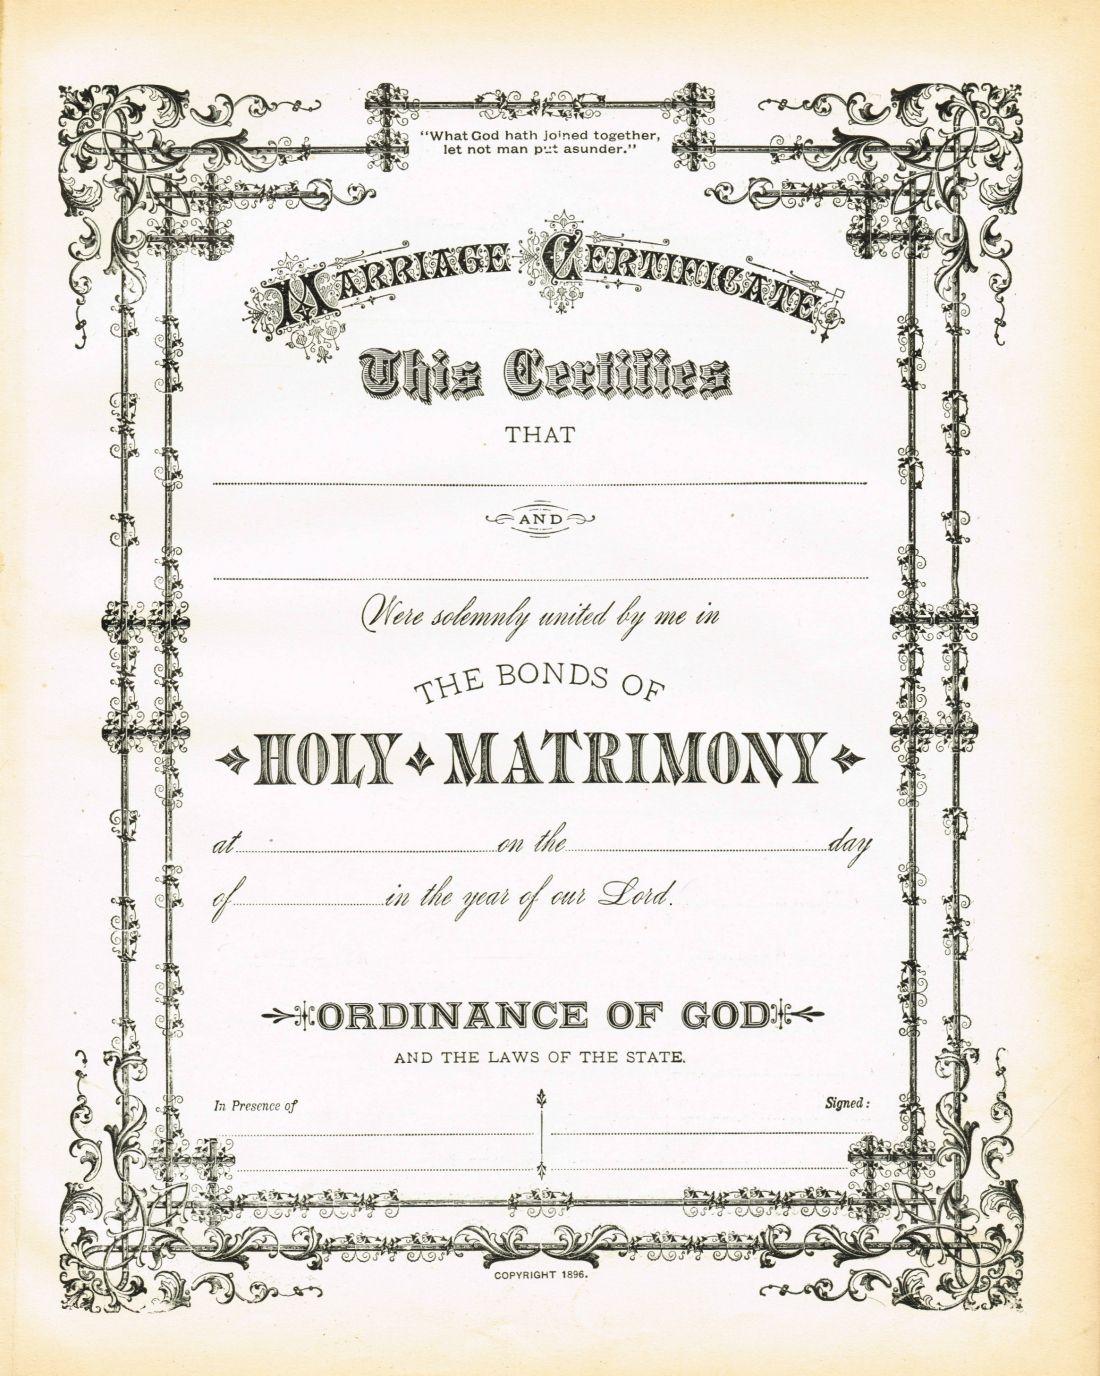 Antique Certificate Of Marriage Printable Via Knickoftime - Free Printable Wedding Certificates